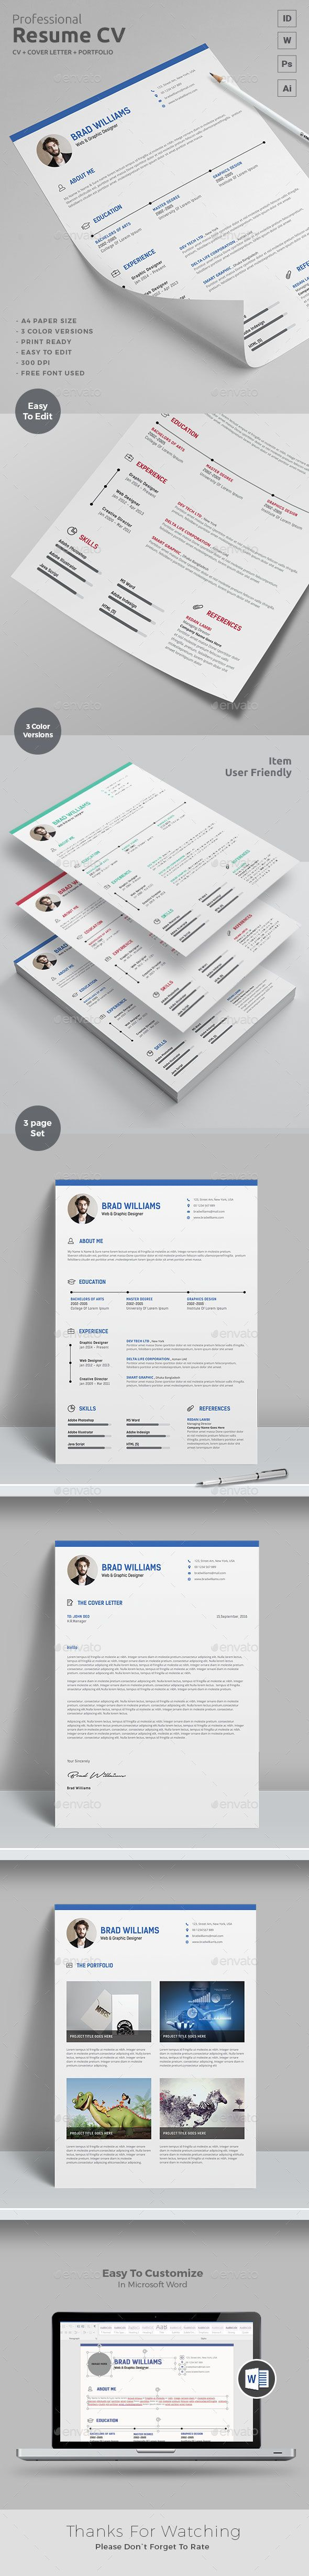 Resume Objective Line Excel  Best Best Resume Templates Microsoft Word Images On Pinterest  Sample Consulting Resume Excel with Free Printable Resume Examples Pdf Resume Sales Resume Keywords